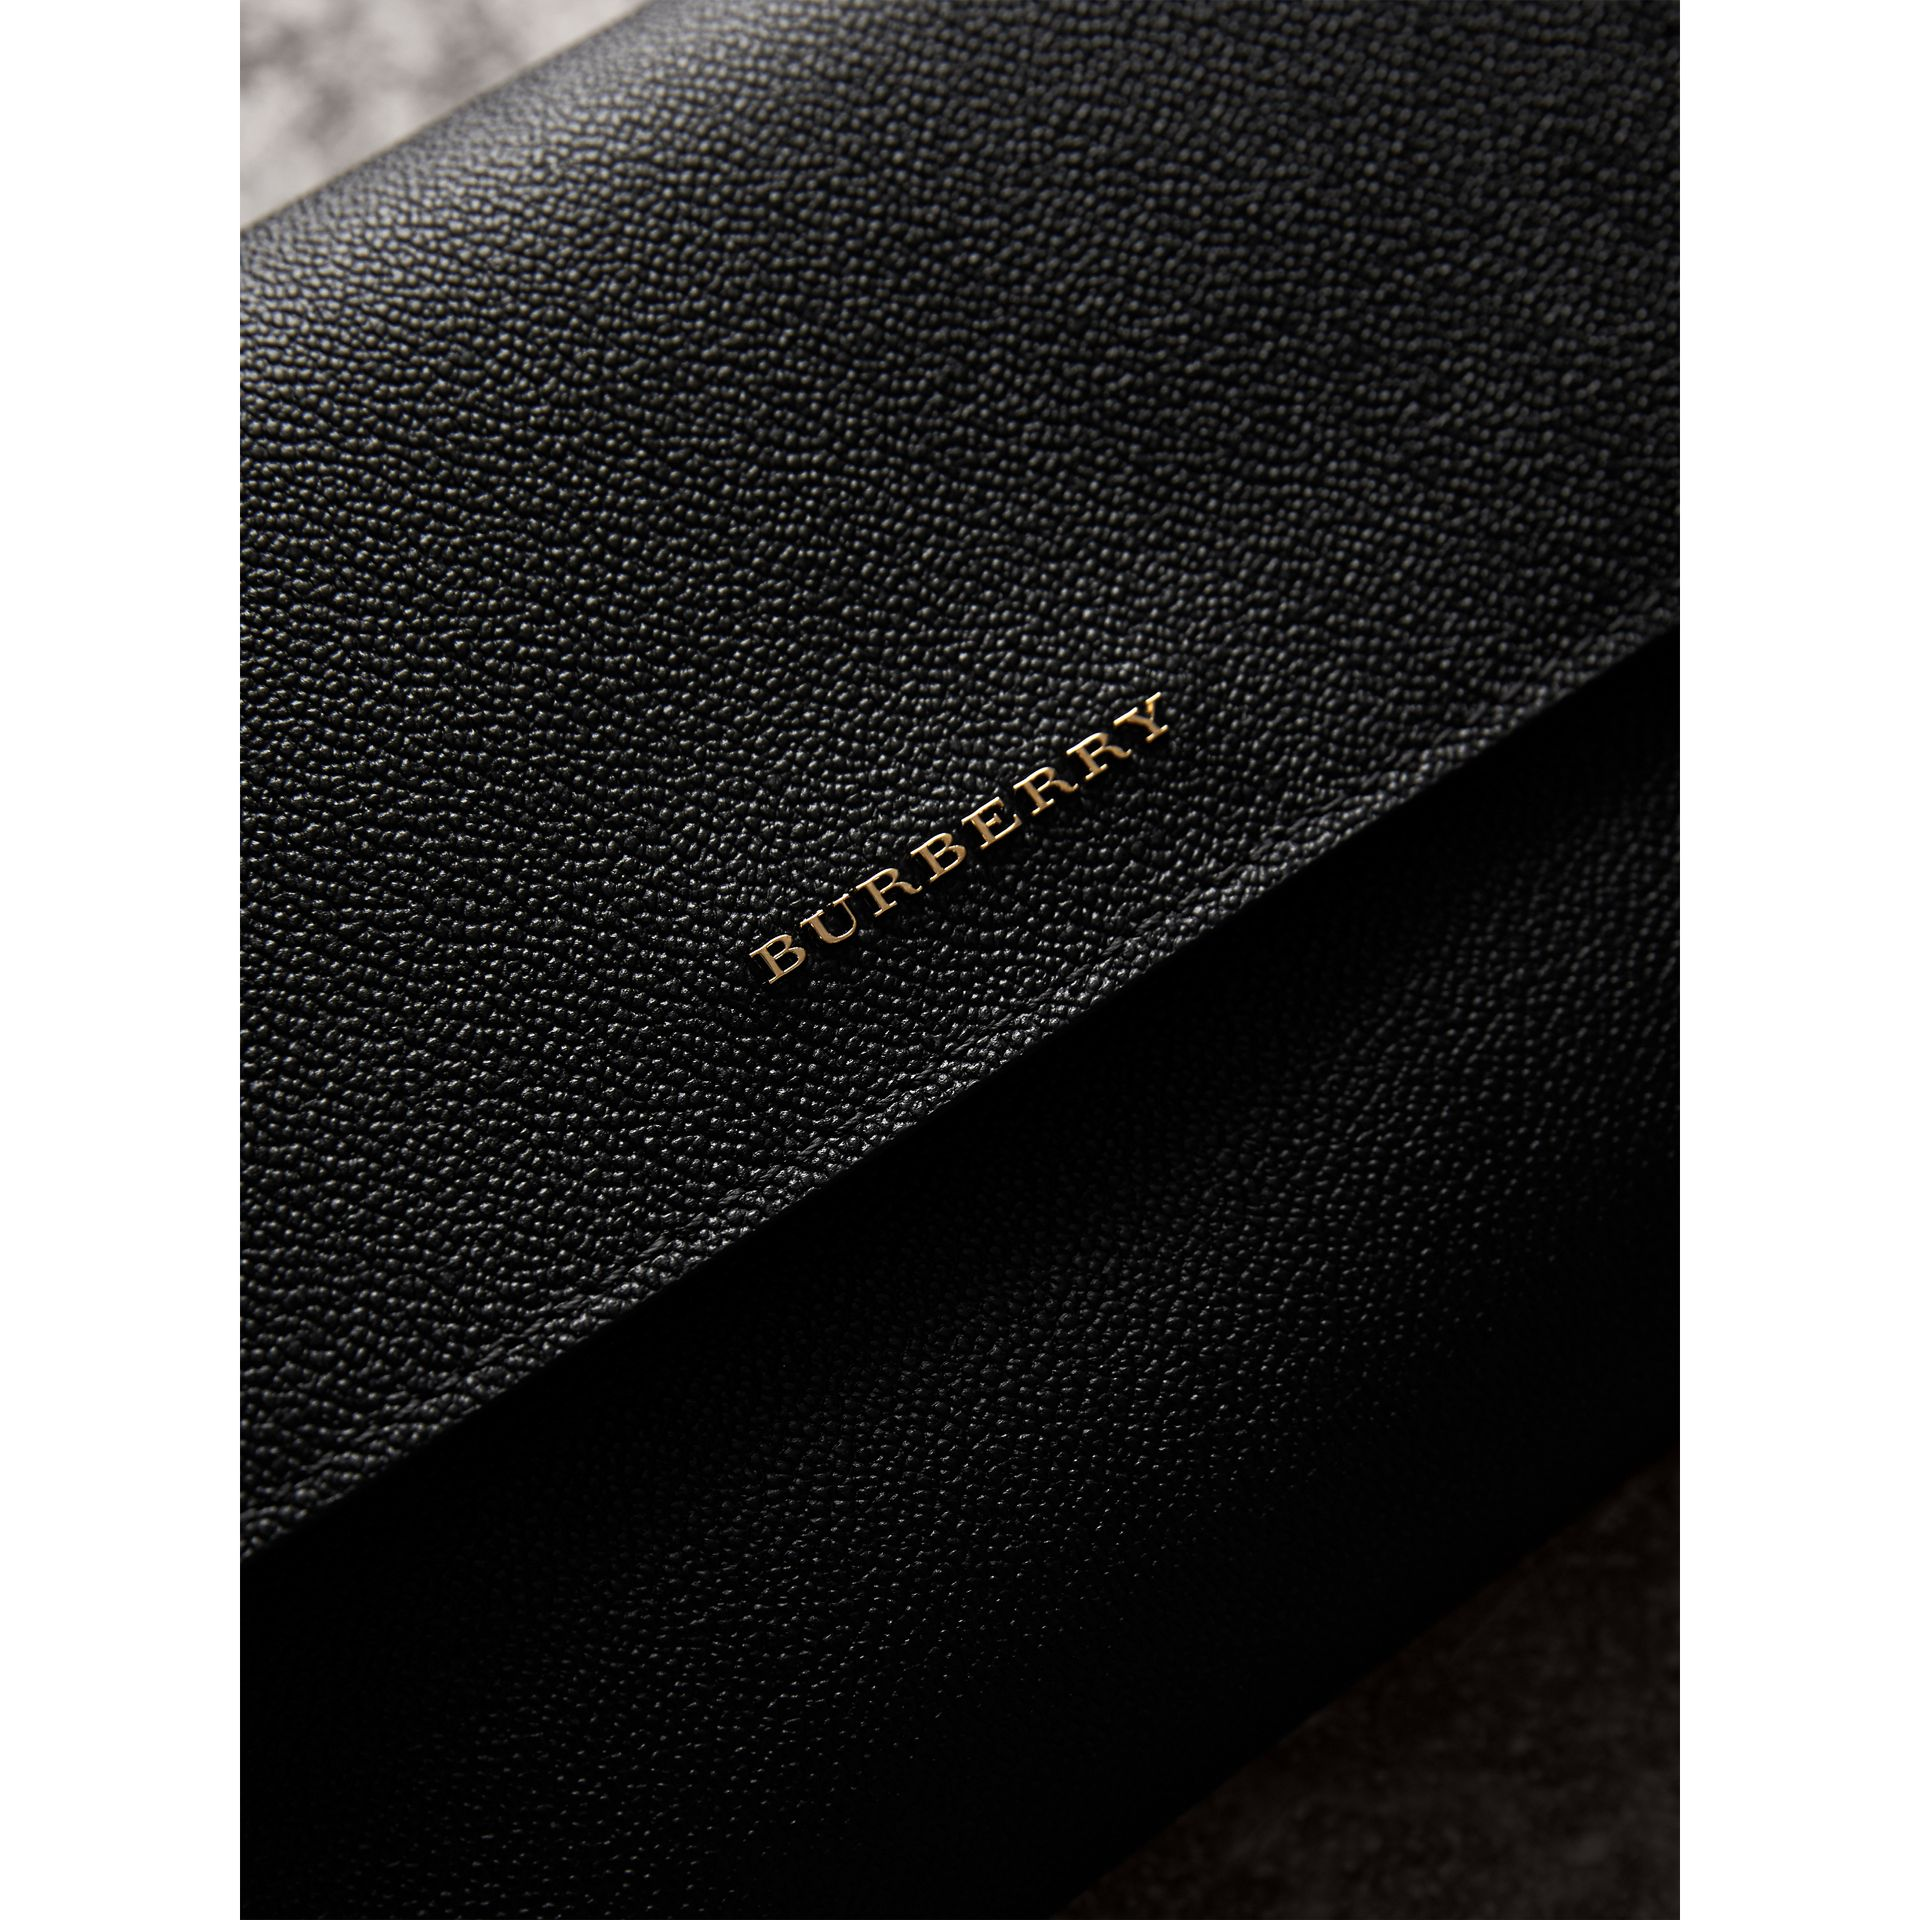 Grainy Leather Crossbody Bag in Black - Women | Burberry United Kingdom - gallery image 2